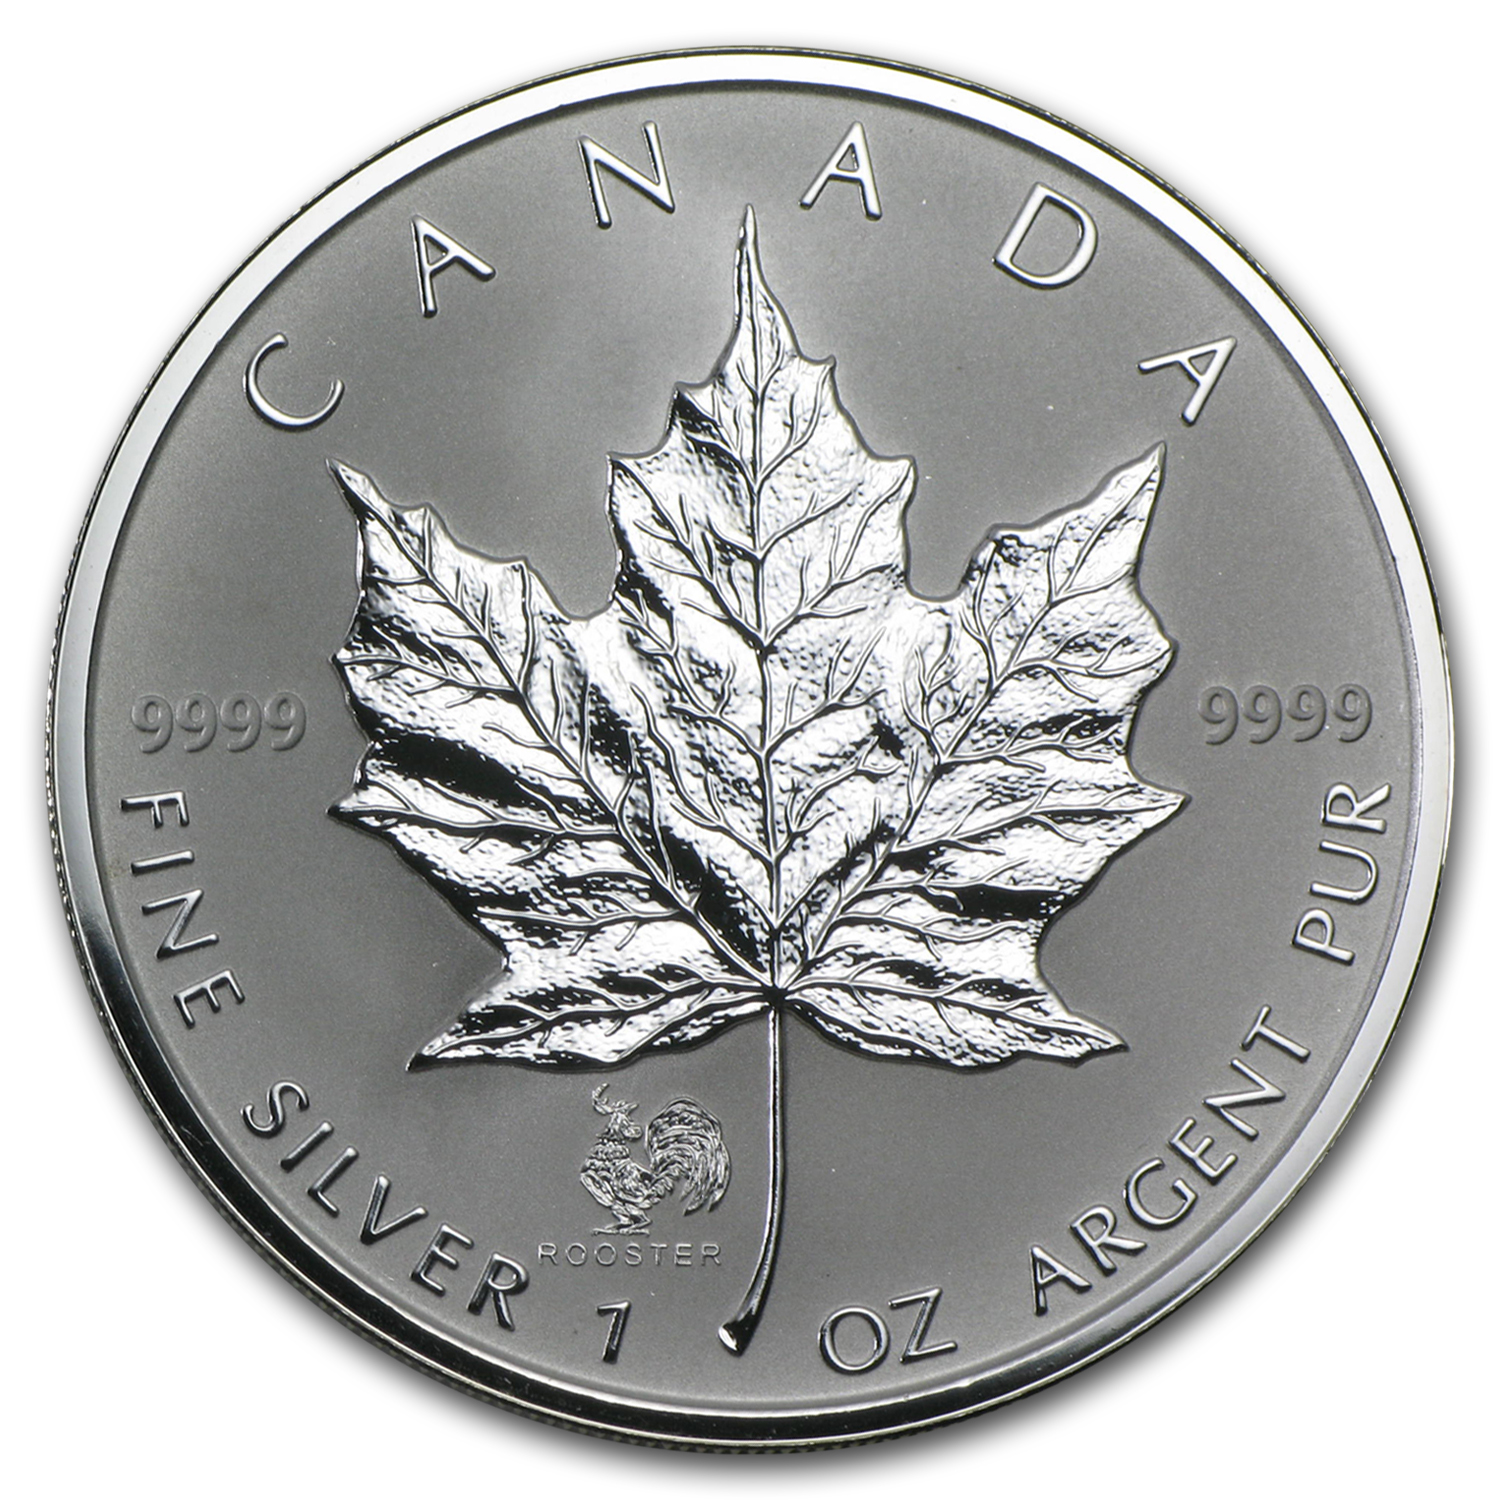 2005 1 oz Silver Canadian Maple Leaf - Lunar ROOSTER Privy